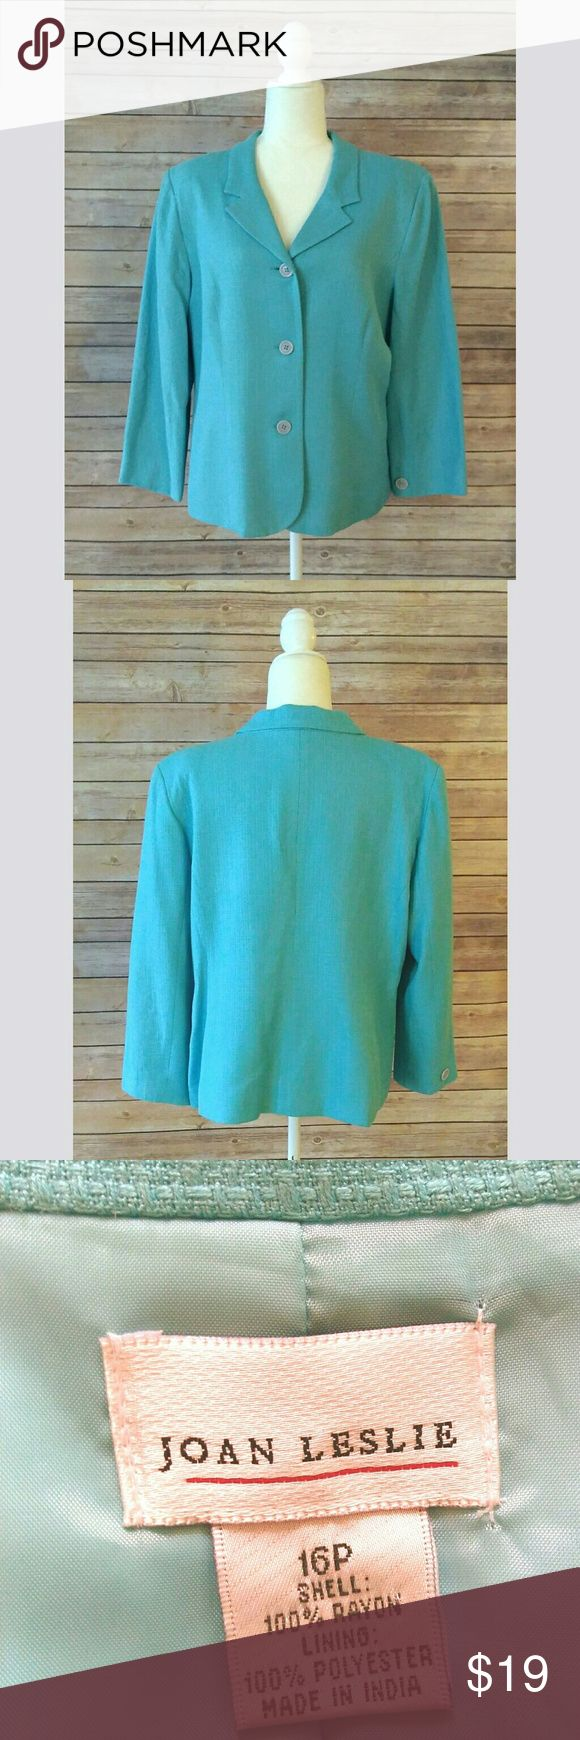 Joan Leslie turquoise color blazer Joan Leslie turquoise blazer with three buttons.  It is a 100% rayon fabric.  It is fully lined.  It is a beautiful jacket that can be worn in a business setting or even with jeans as a casual chic outfit.  Pet free smoke free home. Joan Leslie Jackets & Coats Blazers